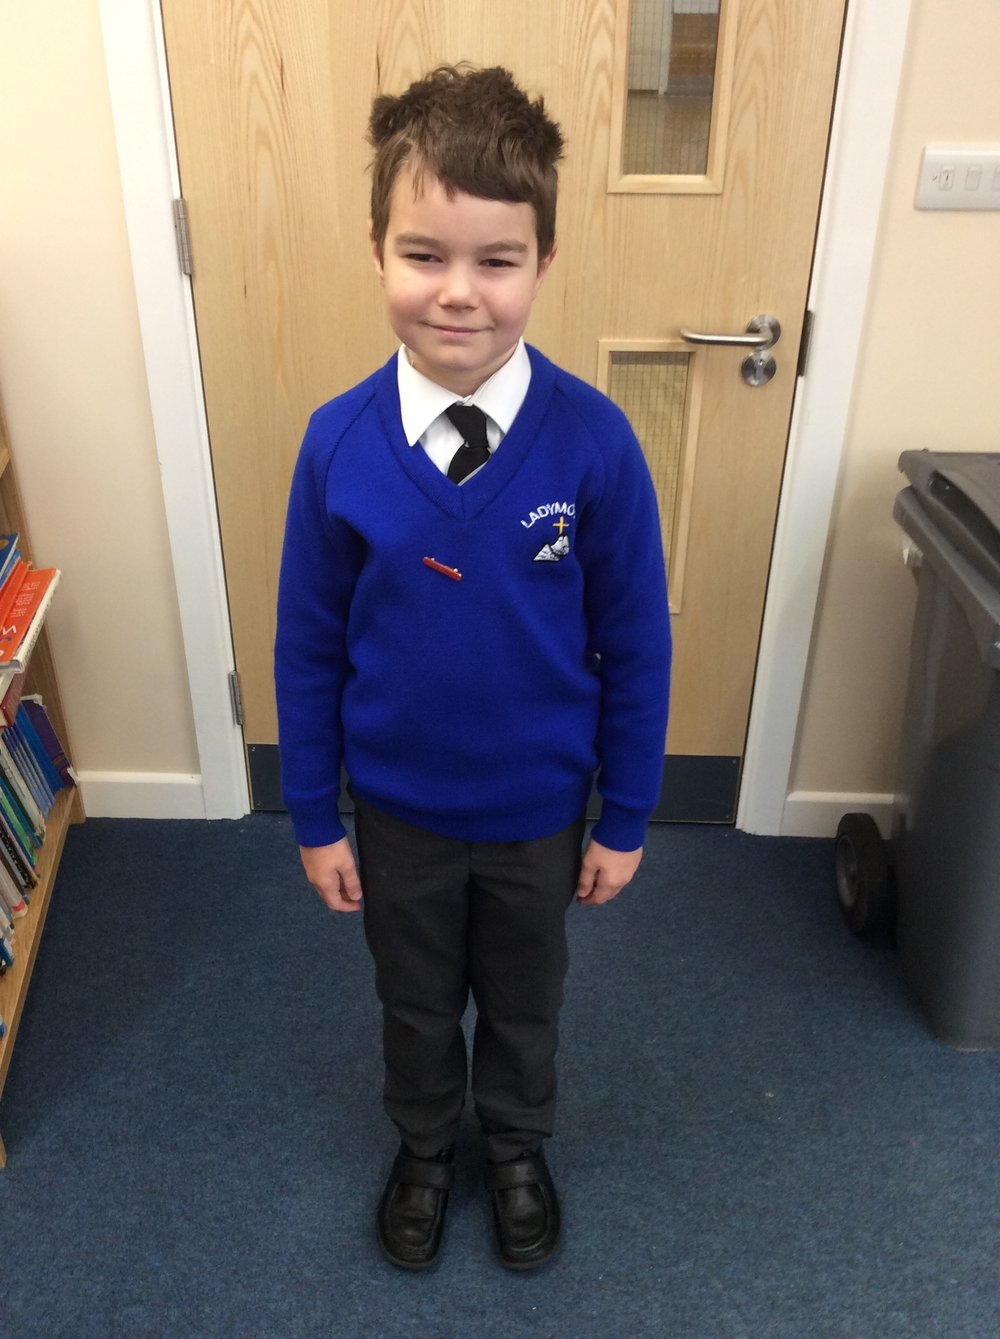 Hello, my name is Harry from Year 5 and I am the elected secretary of Ladymount School Council. I am responsible for recording the minutes of our meetings and will ensure that everyone has a copy of the minutes to share with their class.